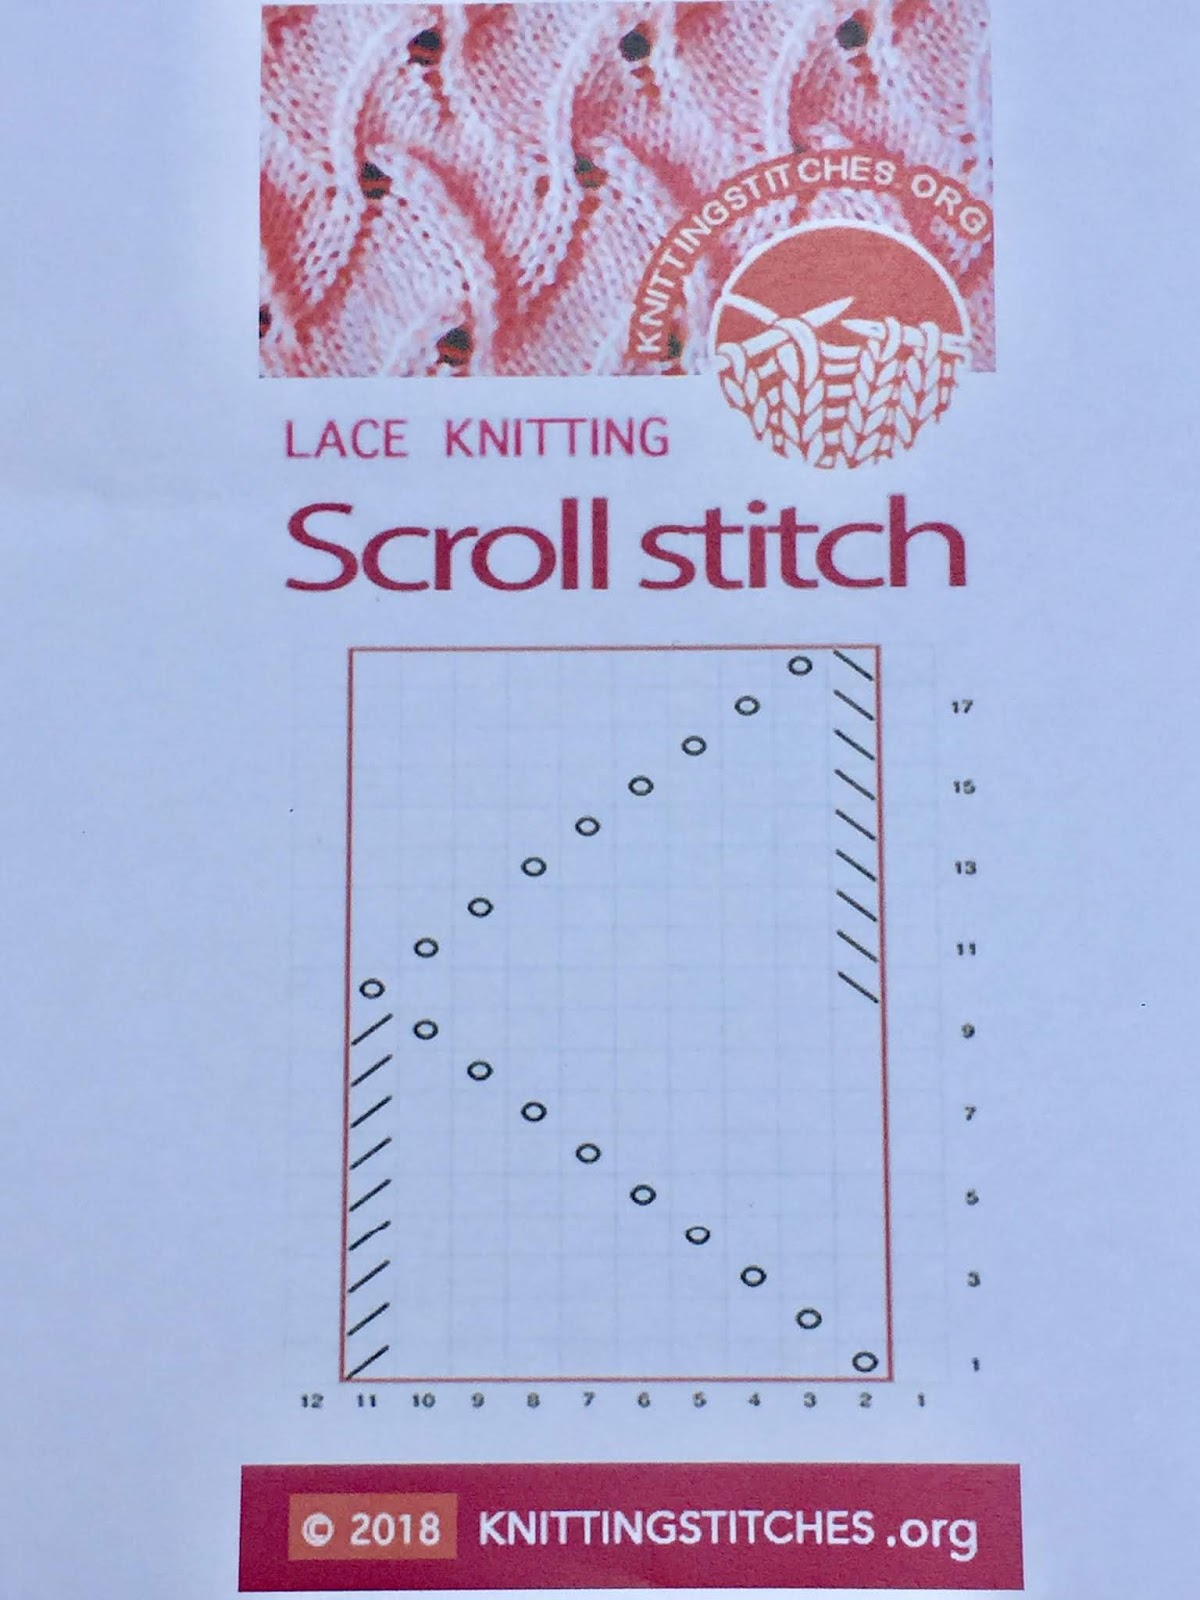 Knitting Stitches 2018 - Scroll Lace Knitting